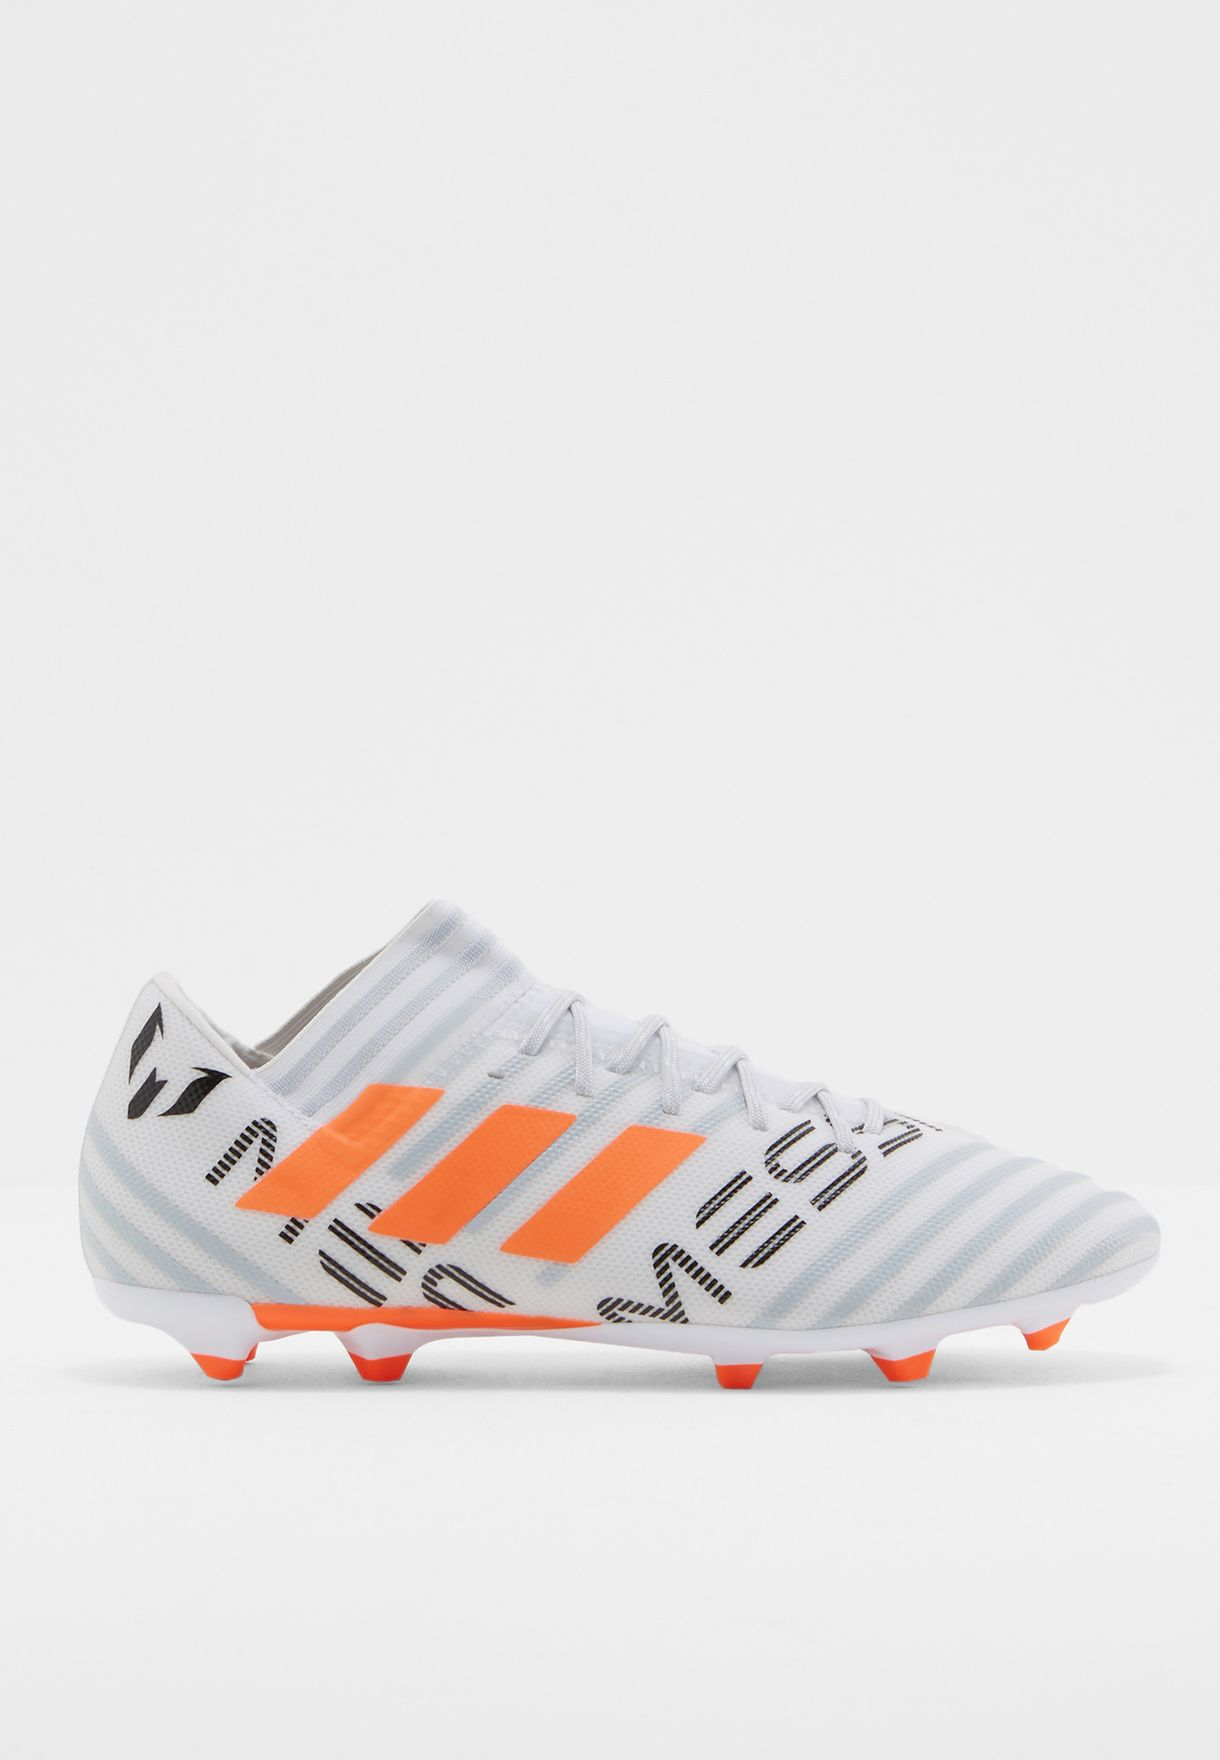 c425a7f7e74 Shop adidas prints Nemeziz Messi 17.3 FG CG2965 for Men in UAE ...